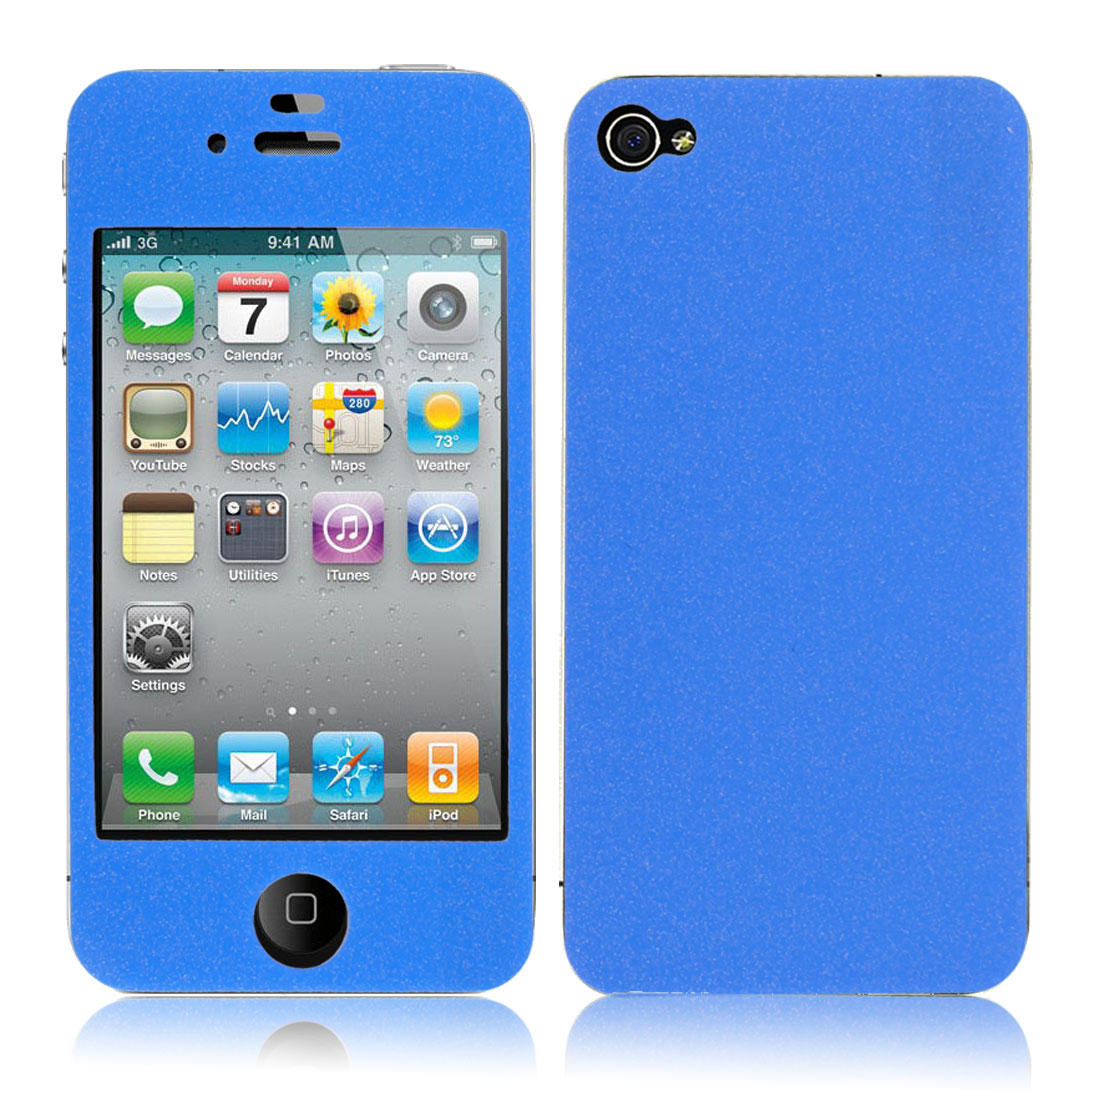 Front + Back Sticker Decal Shield + Screen Protector Blue for iPhone 4 4G 4S 4GS